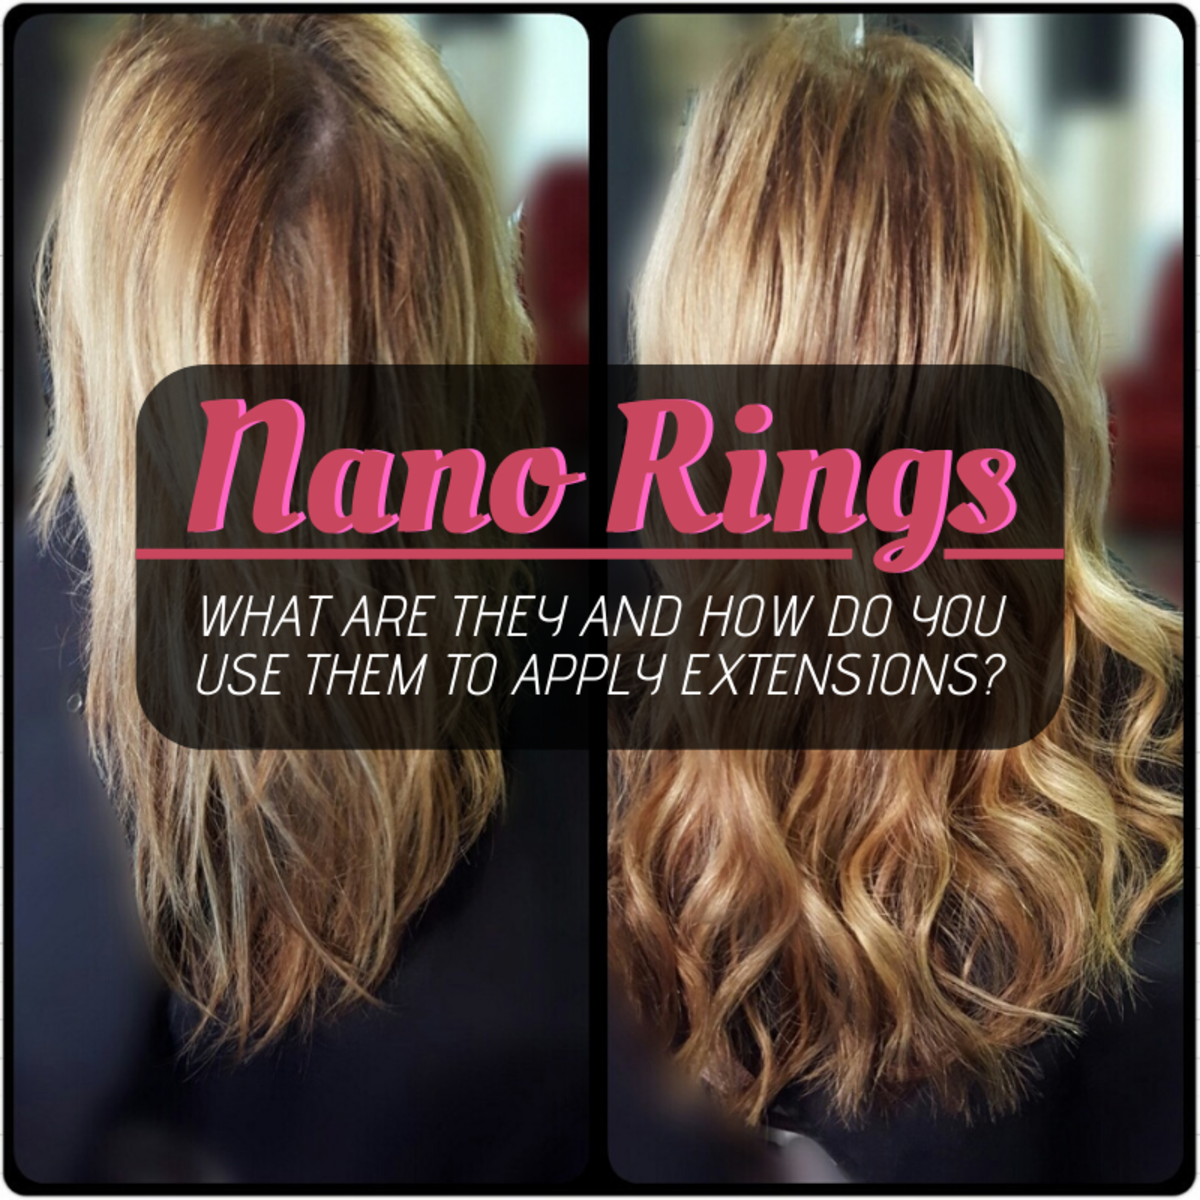 Nano rings are most discreet and long-lasting hair extension application method on the market. Learn how to make them work for you!